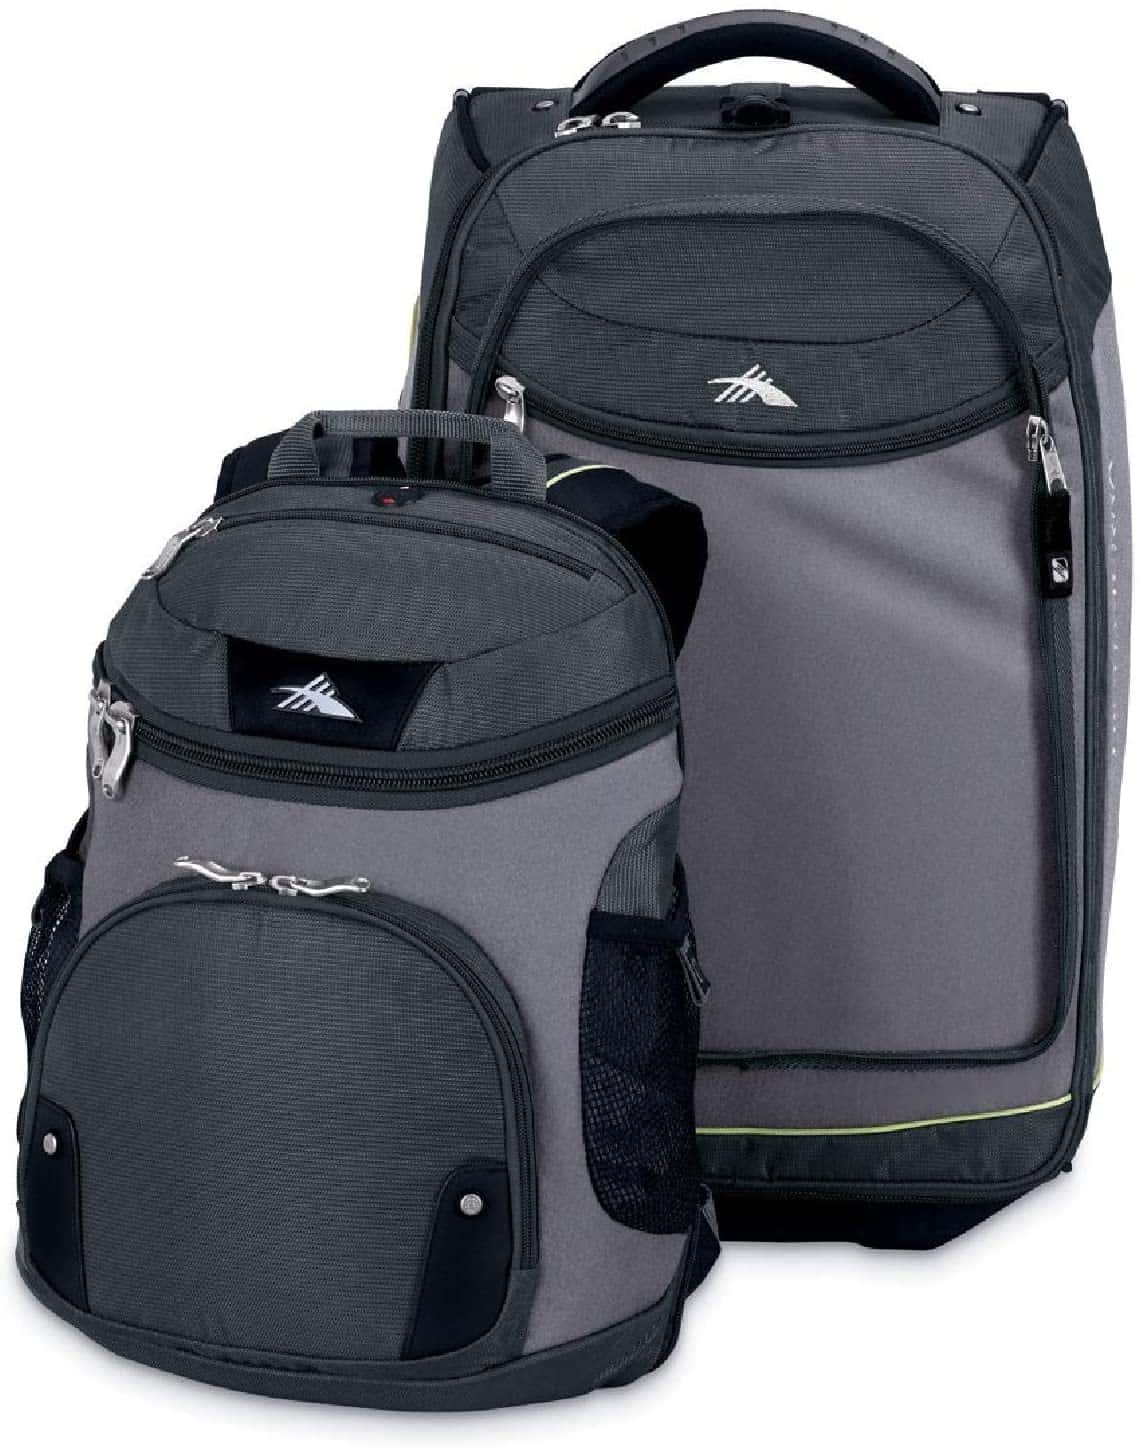 High Sierra AT3 Carry-On Wheeled Backpack - best wheeled backpack with a daypack